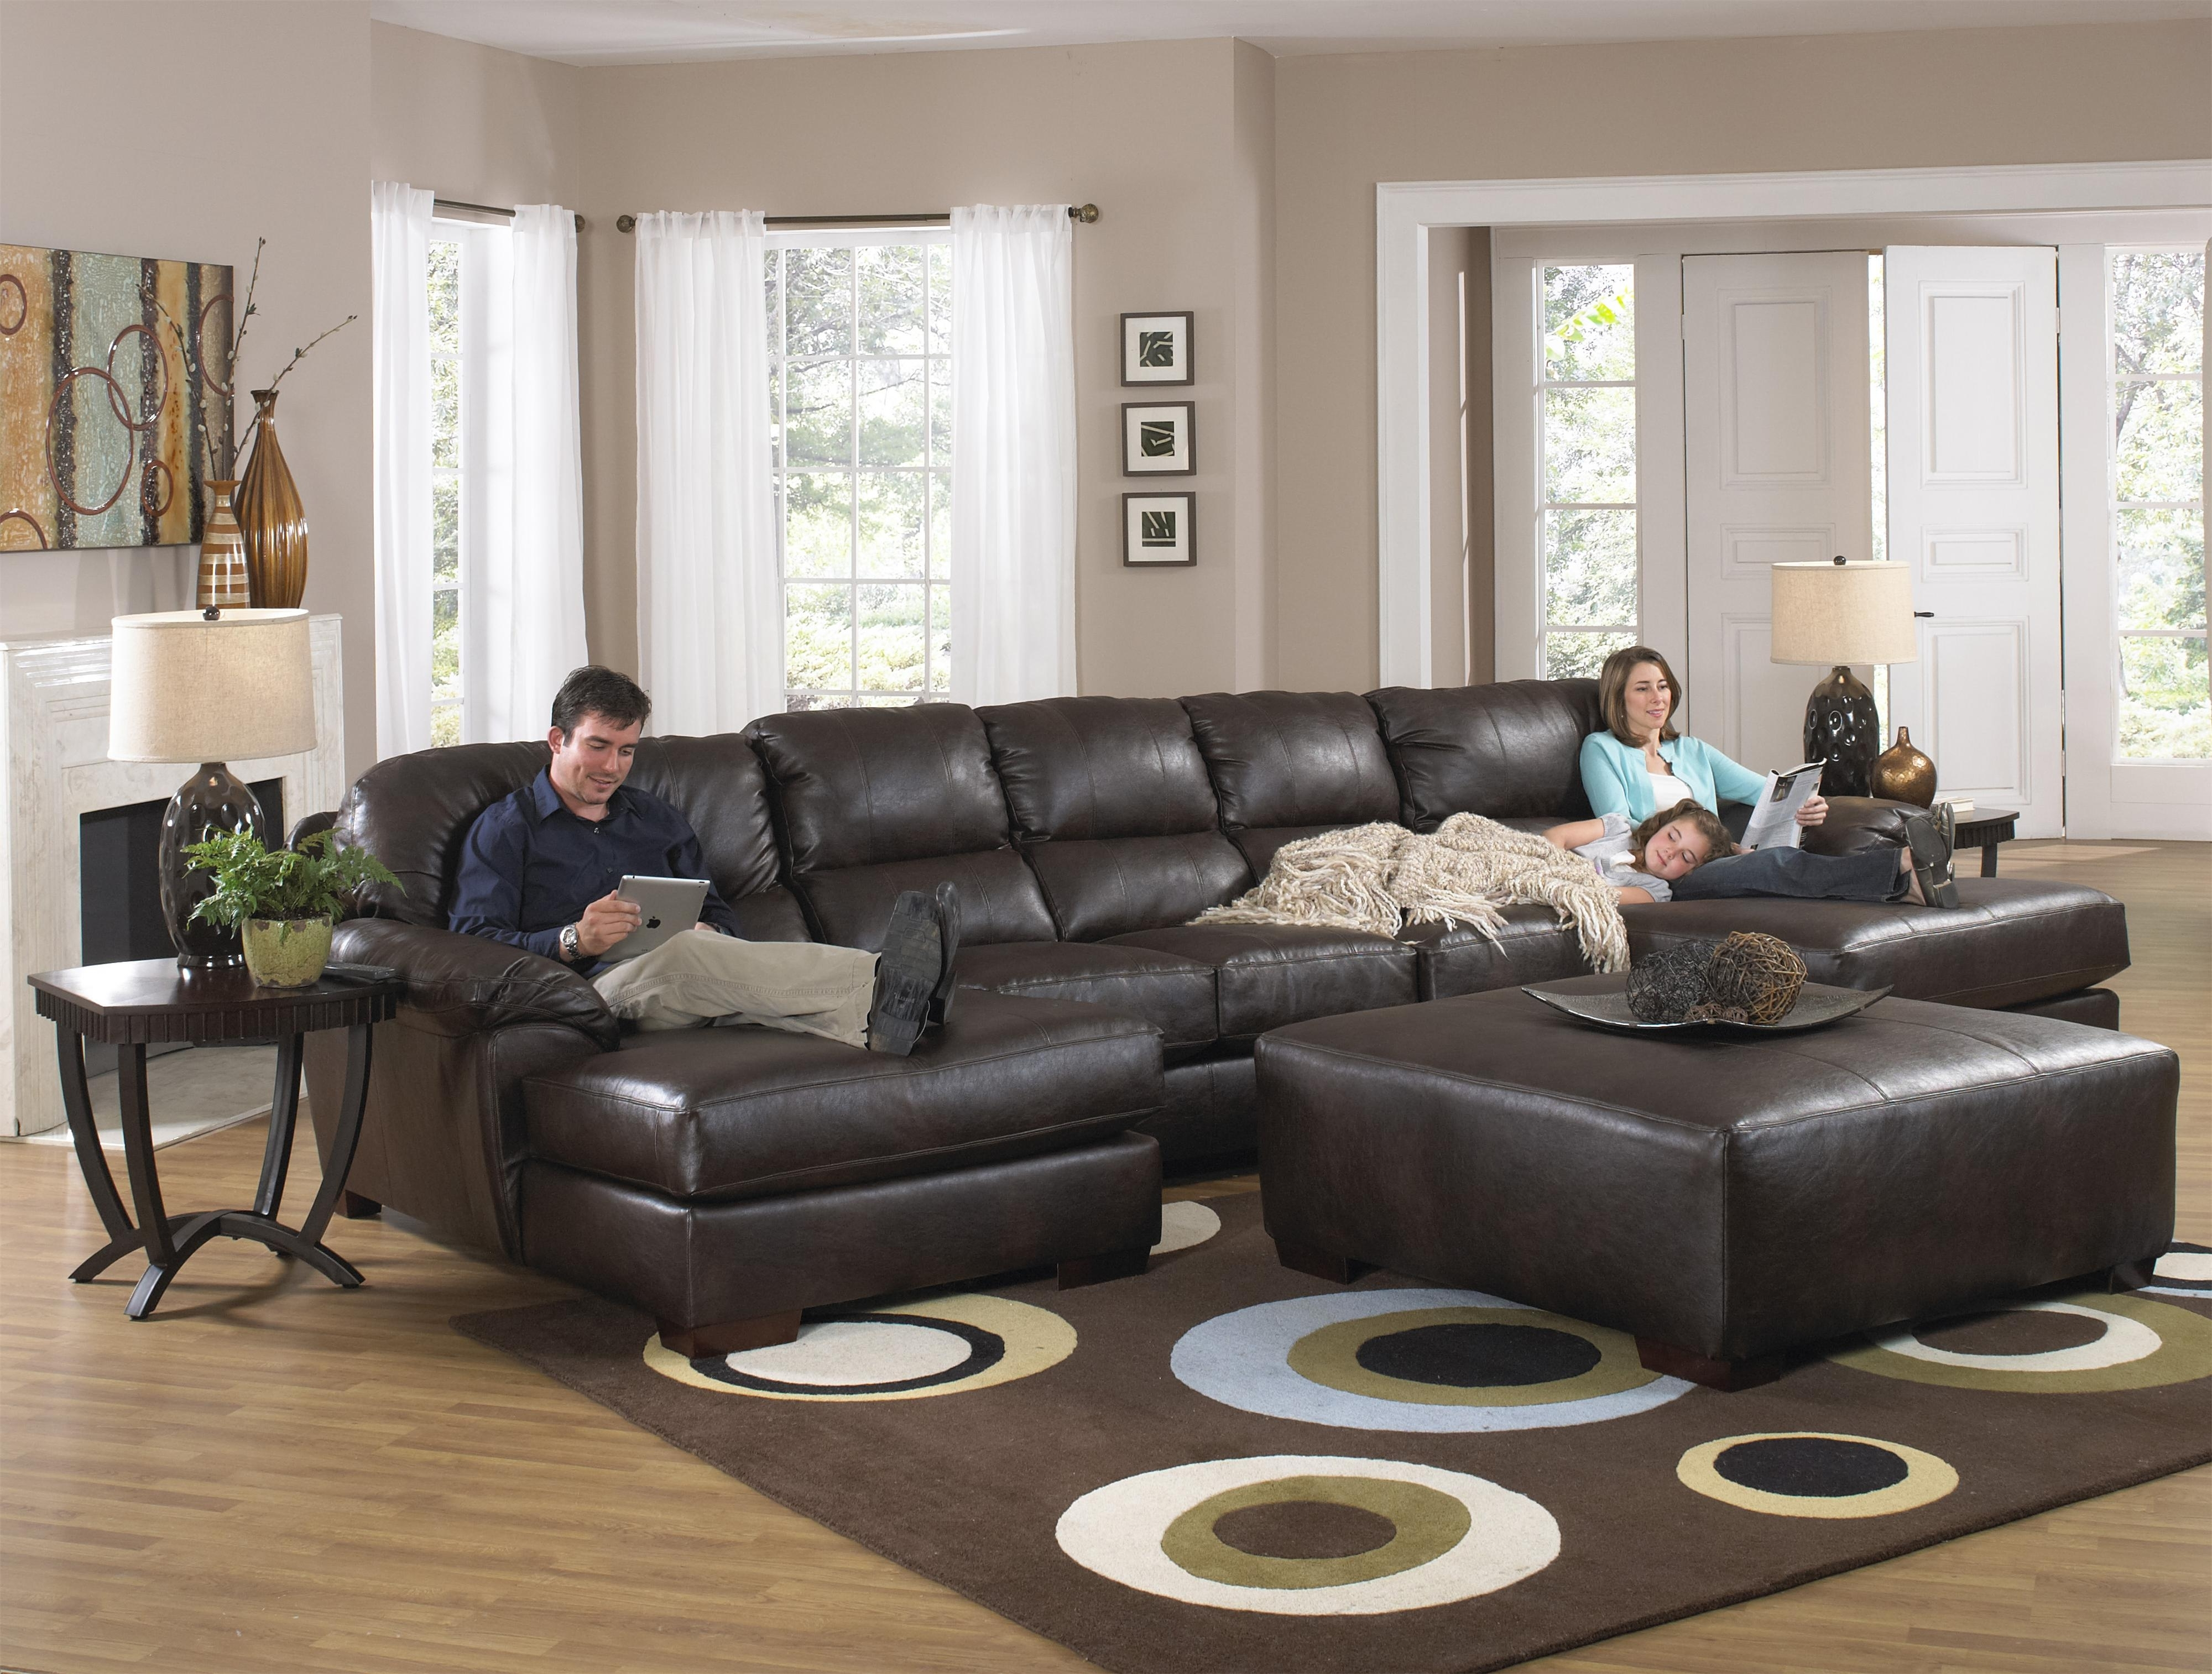 Recent Sectional Sofas With Chaise Lounge And Ottoman Within Sofa : Beautiful Large Sectional Sofa With Chaise L Shaped Cream (View 8 of 20)